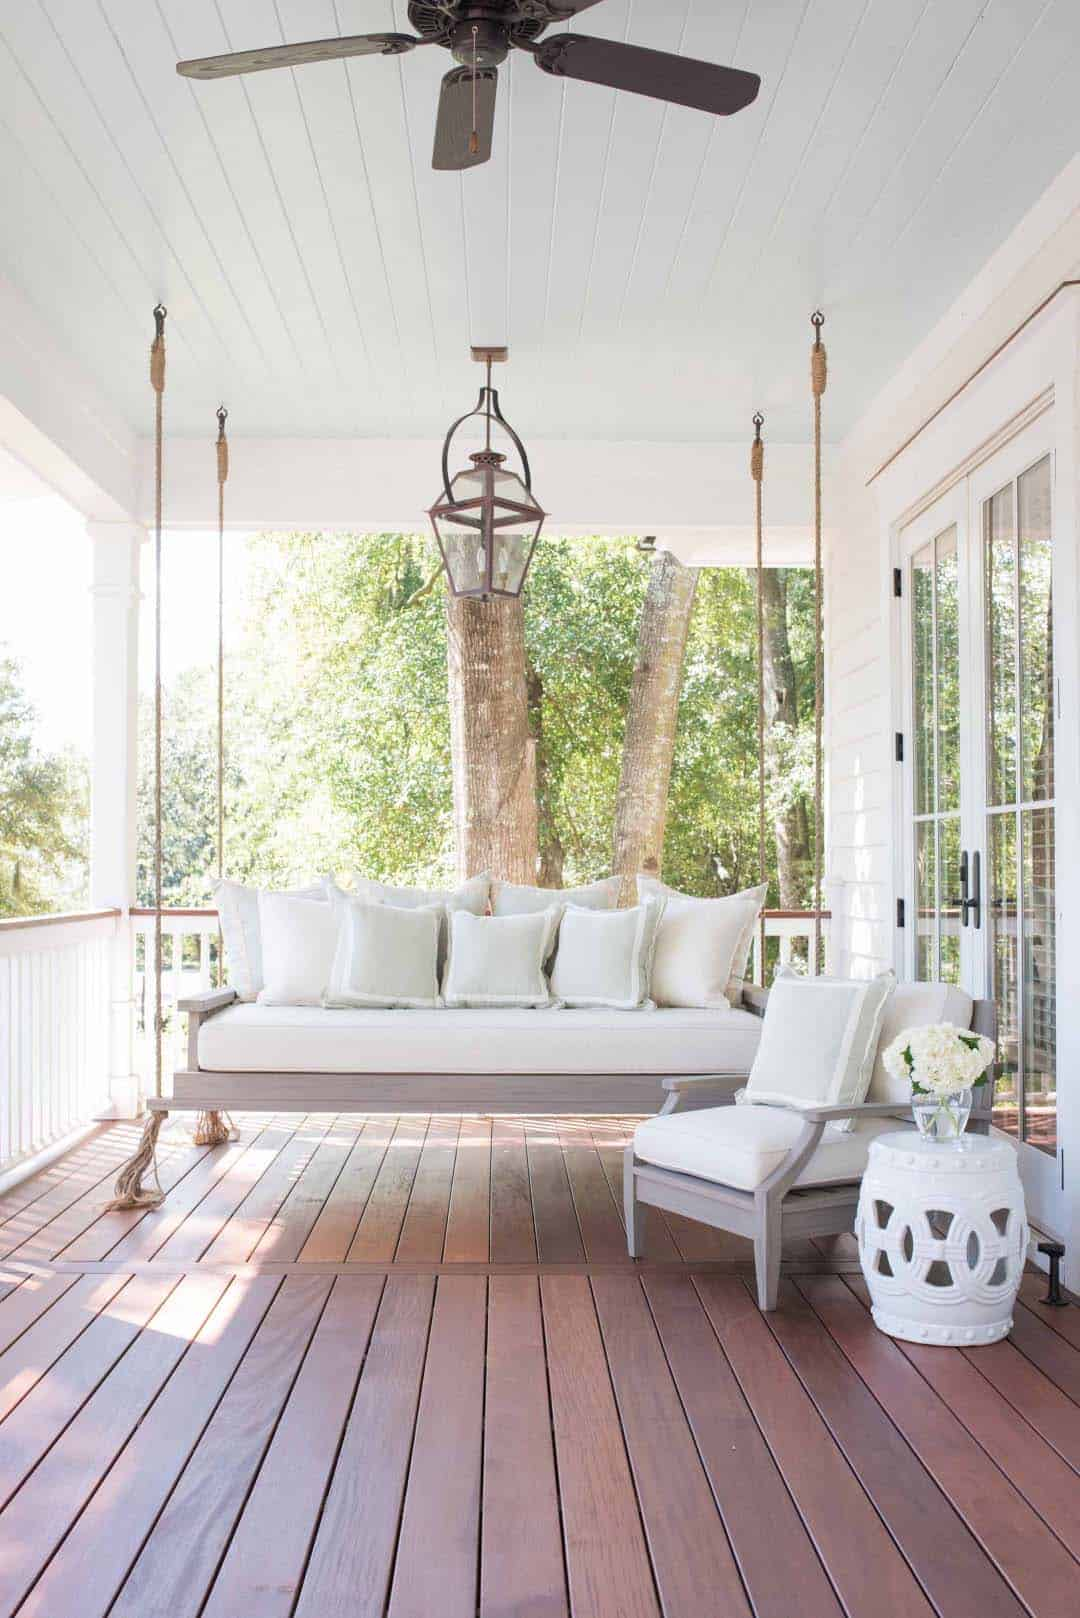 Swinging Bed Ideas For Your Porch